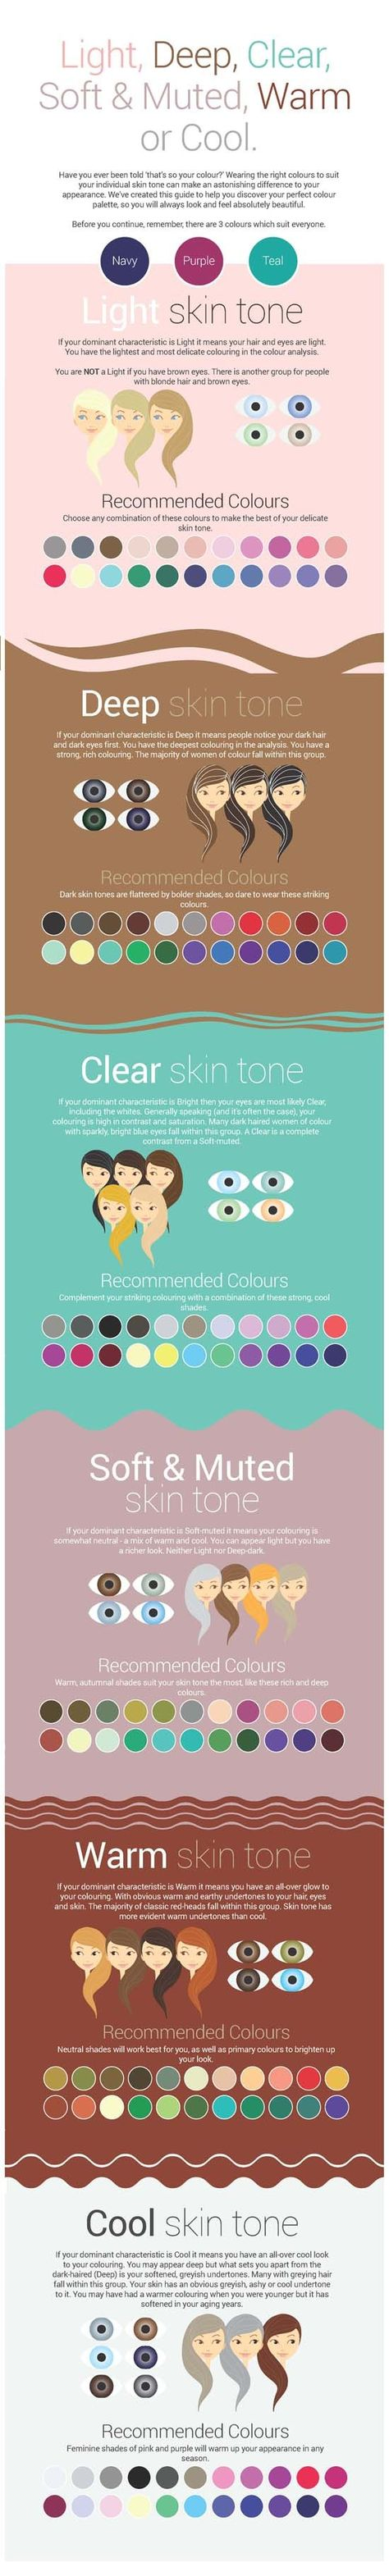 Beauty : What Colors to Wear to Match Your Skin Tone ....... Discovering the right color palette for your complexion can really transform the way you dress...... kur <3 <3